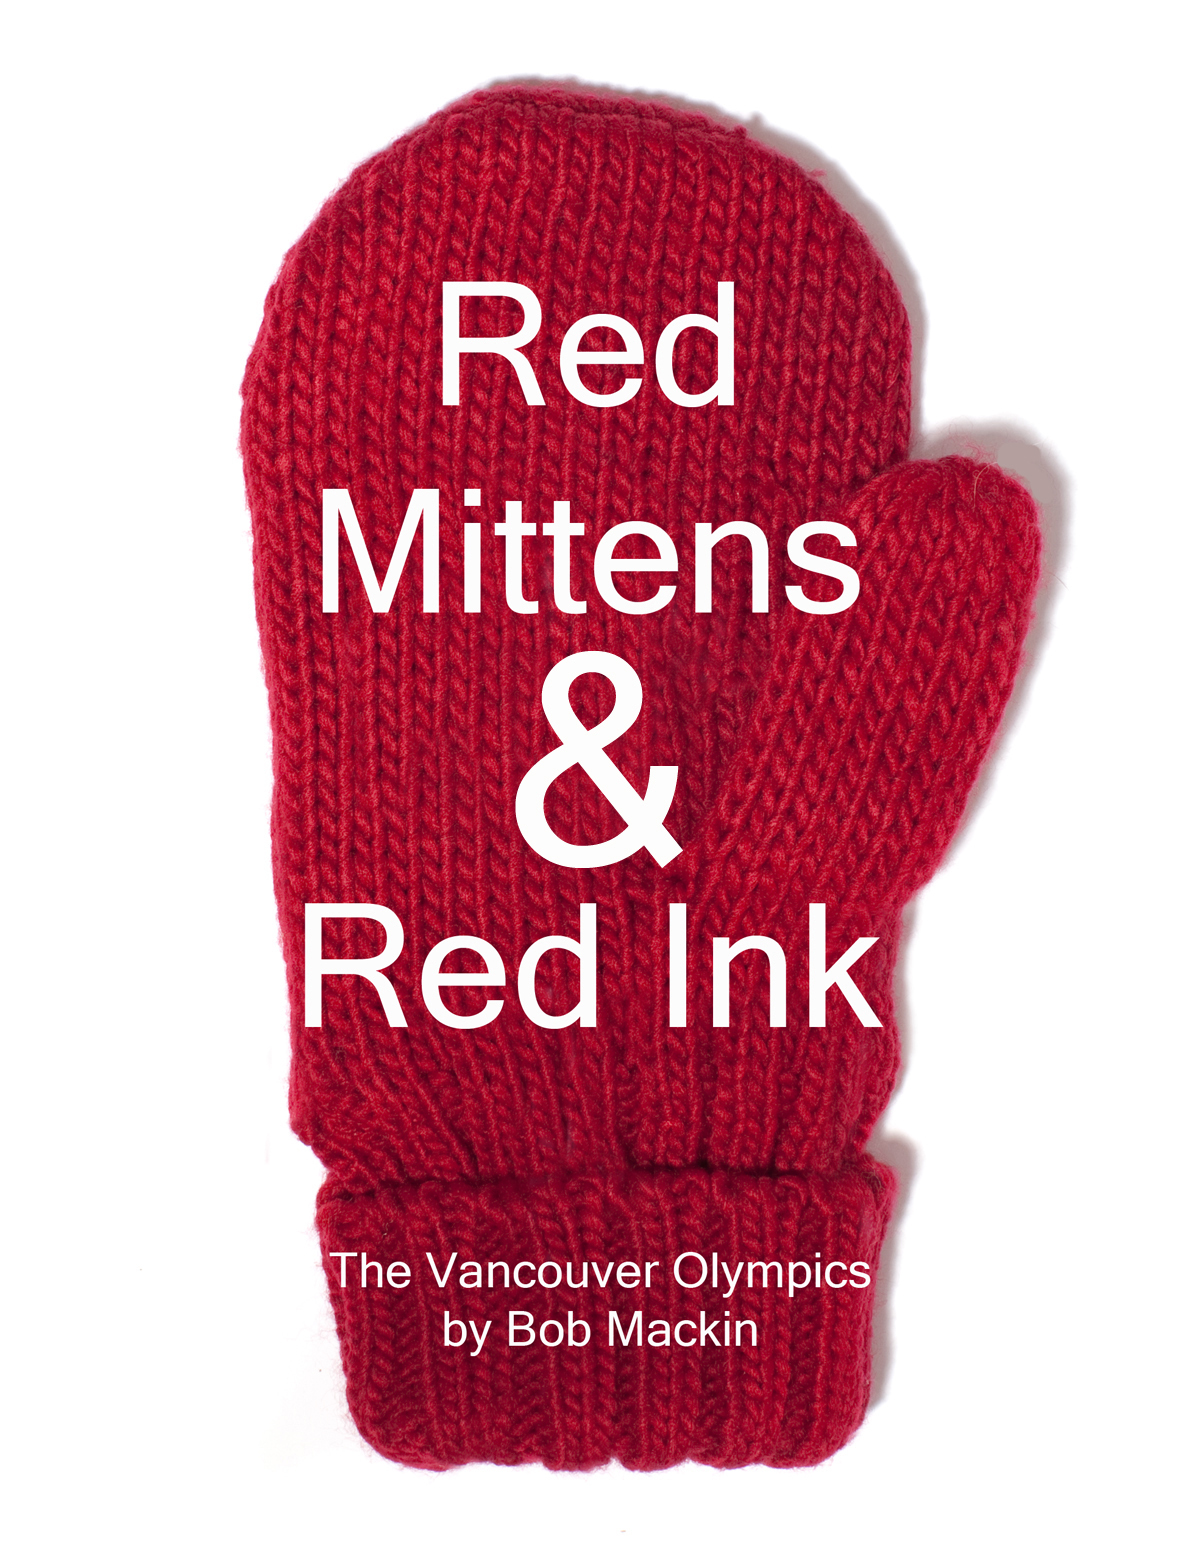 Red Mittens & Red Ink: The Vancouver Olympics